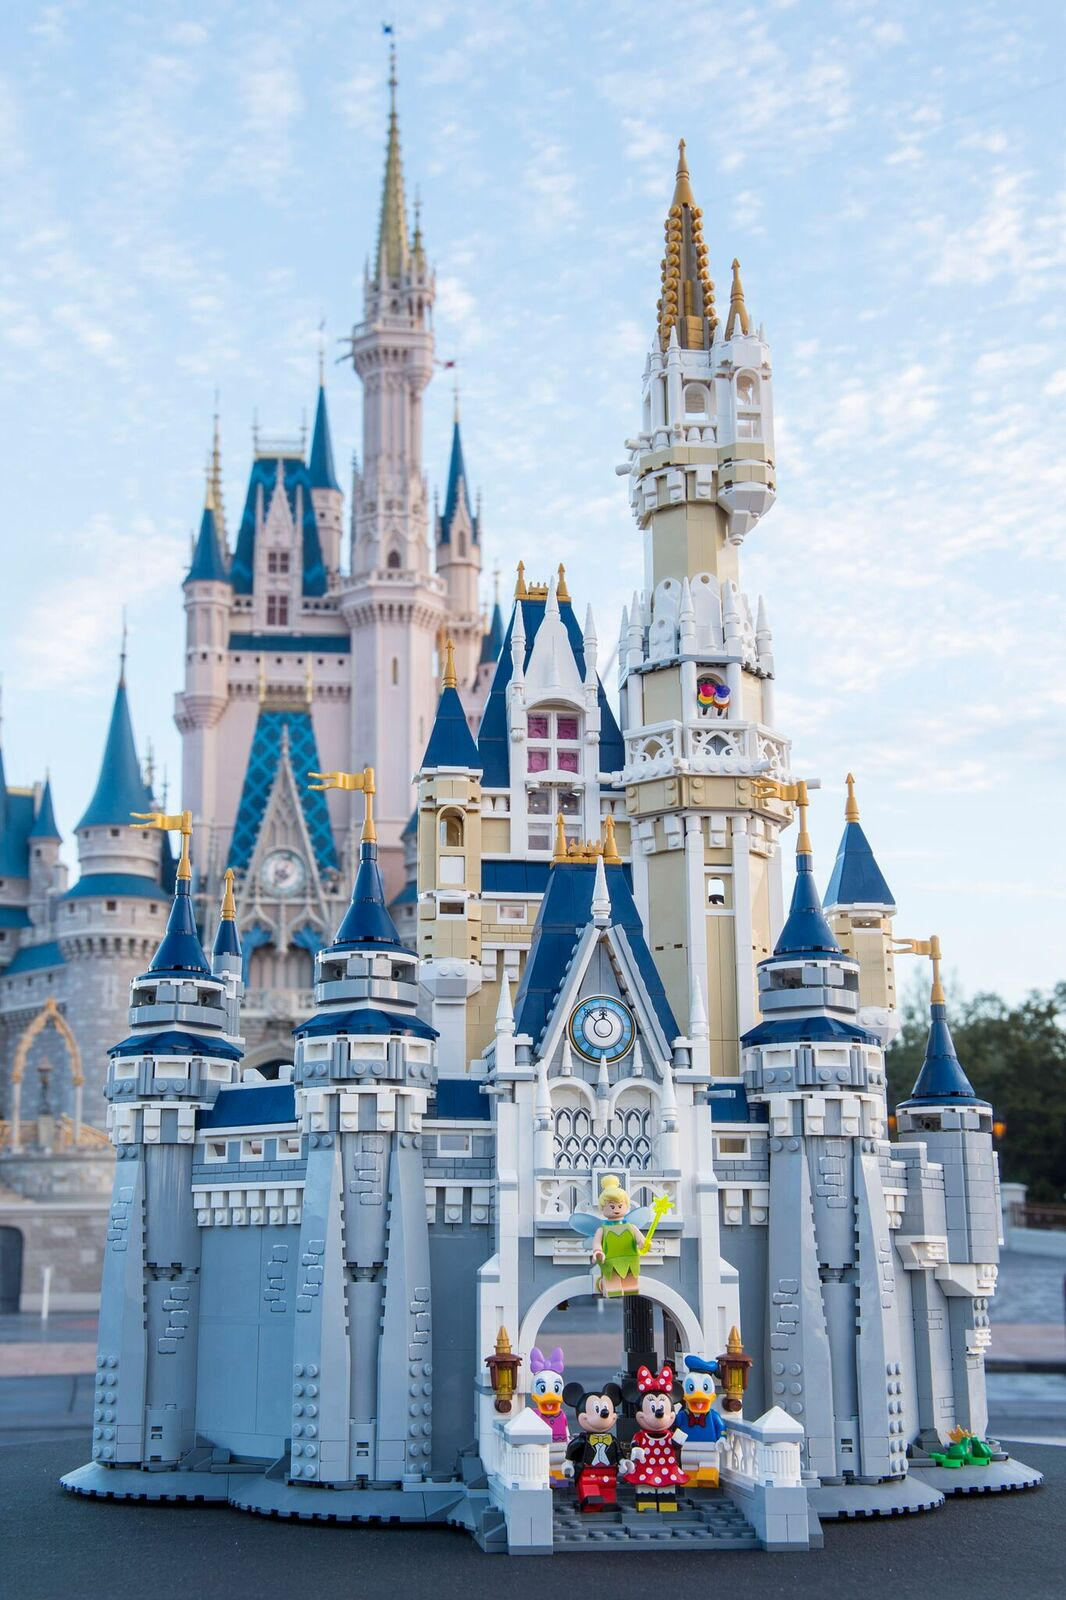 LEGO shows off new Disney Castle set with 4080 pieces ...